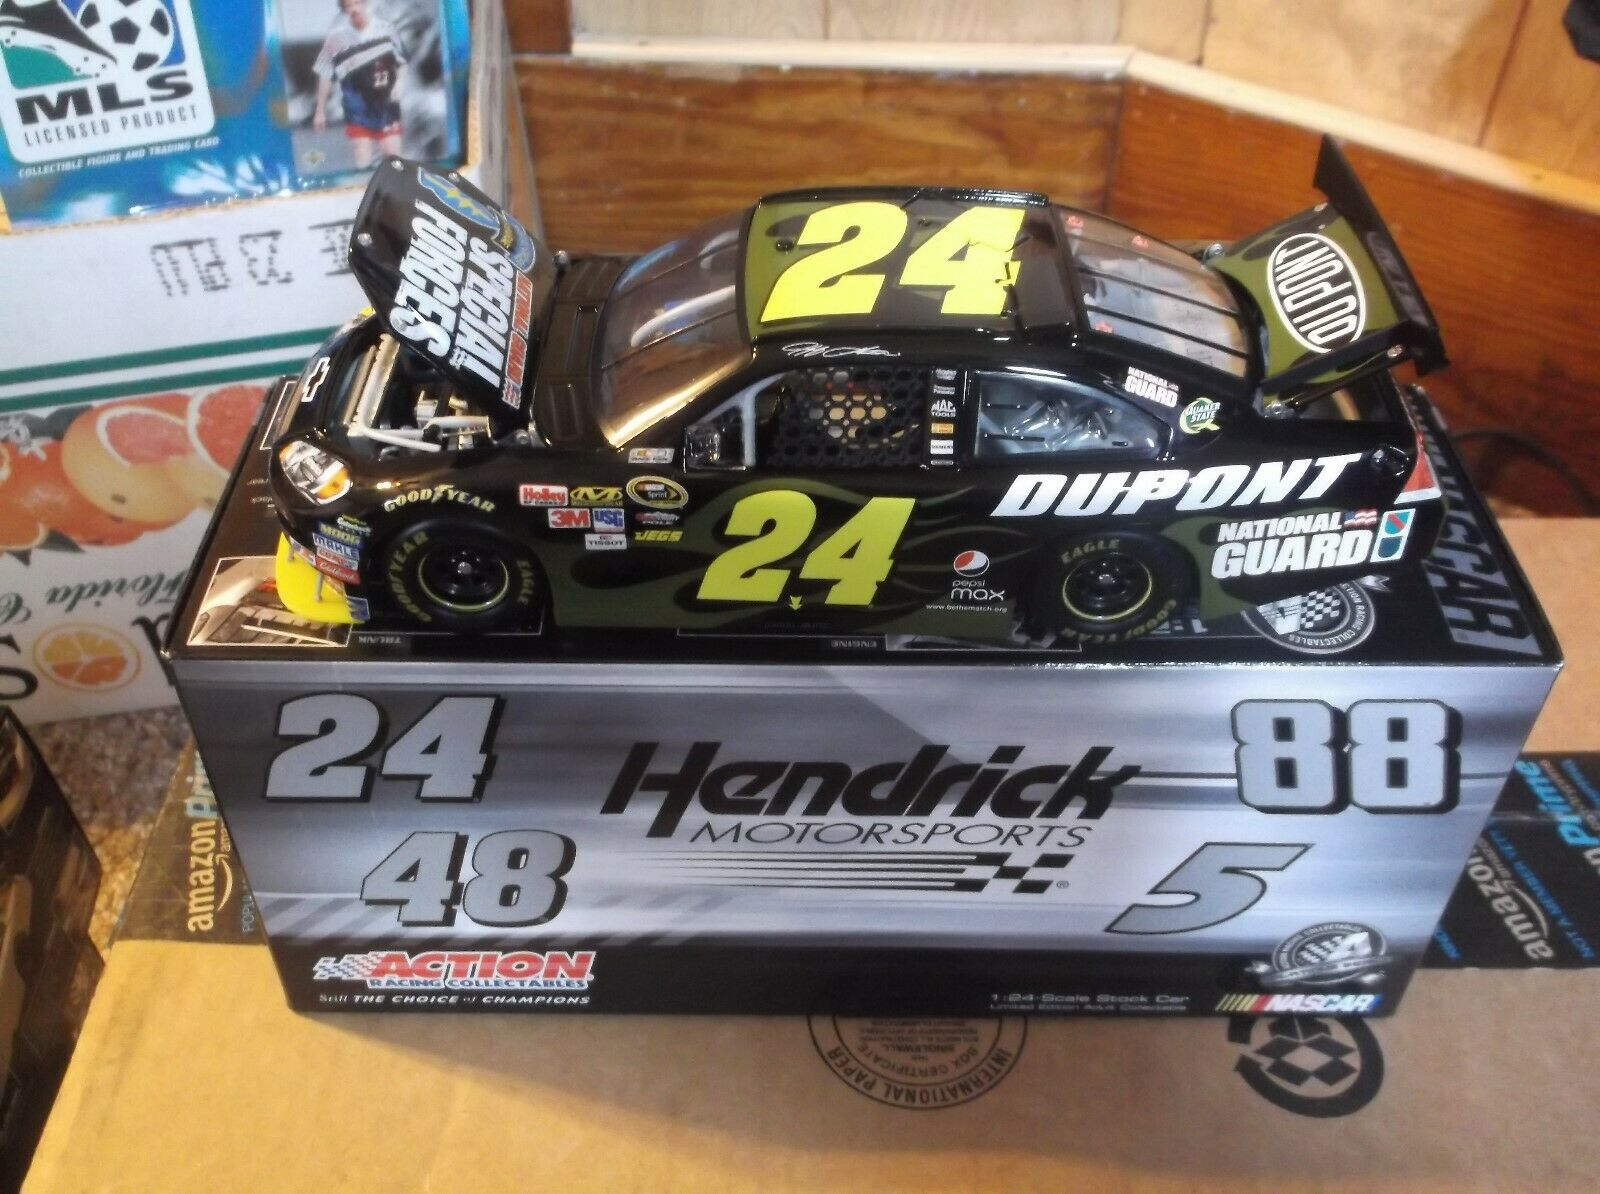 VERY RARE JEFF GORDON 24 NATIONAL GAURD SPECIAL FORCES 1 24TH SCALE DIECAST